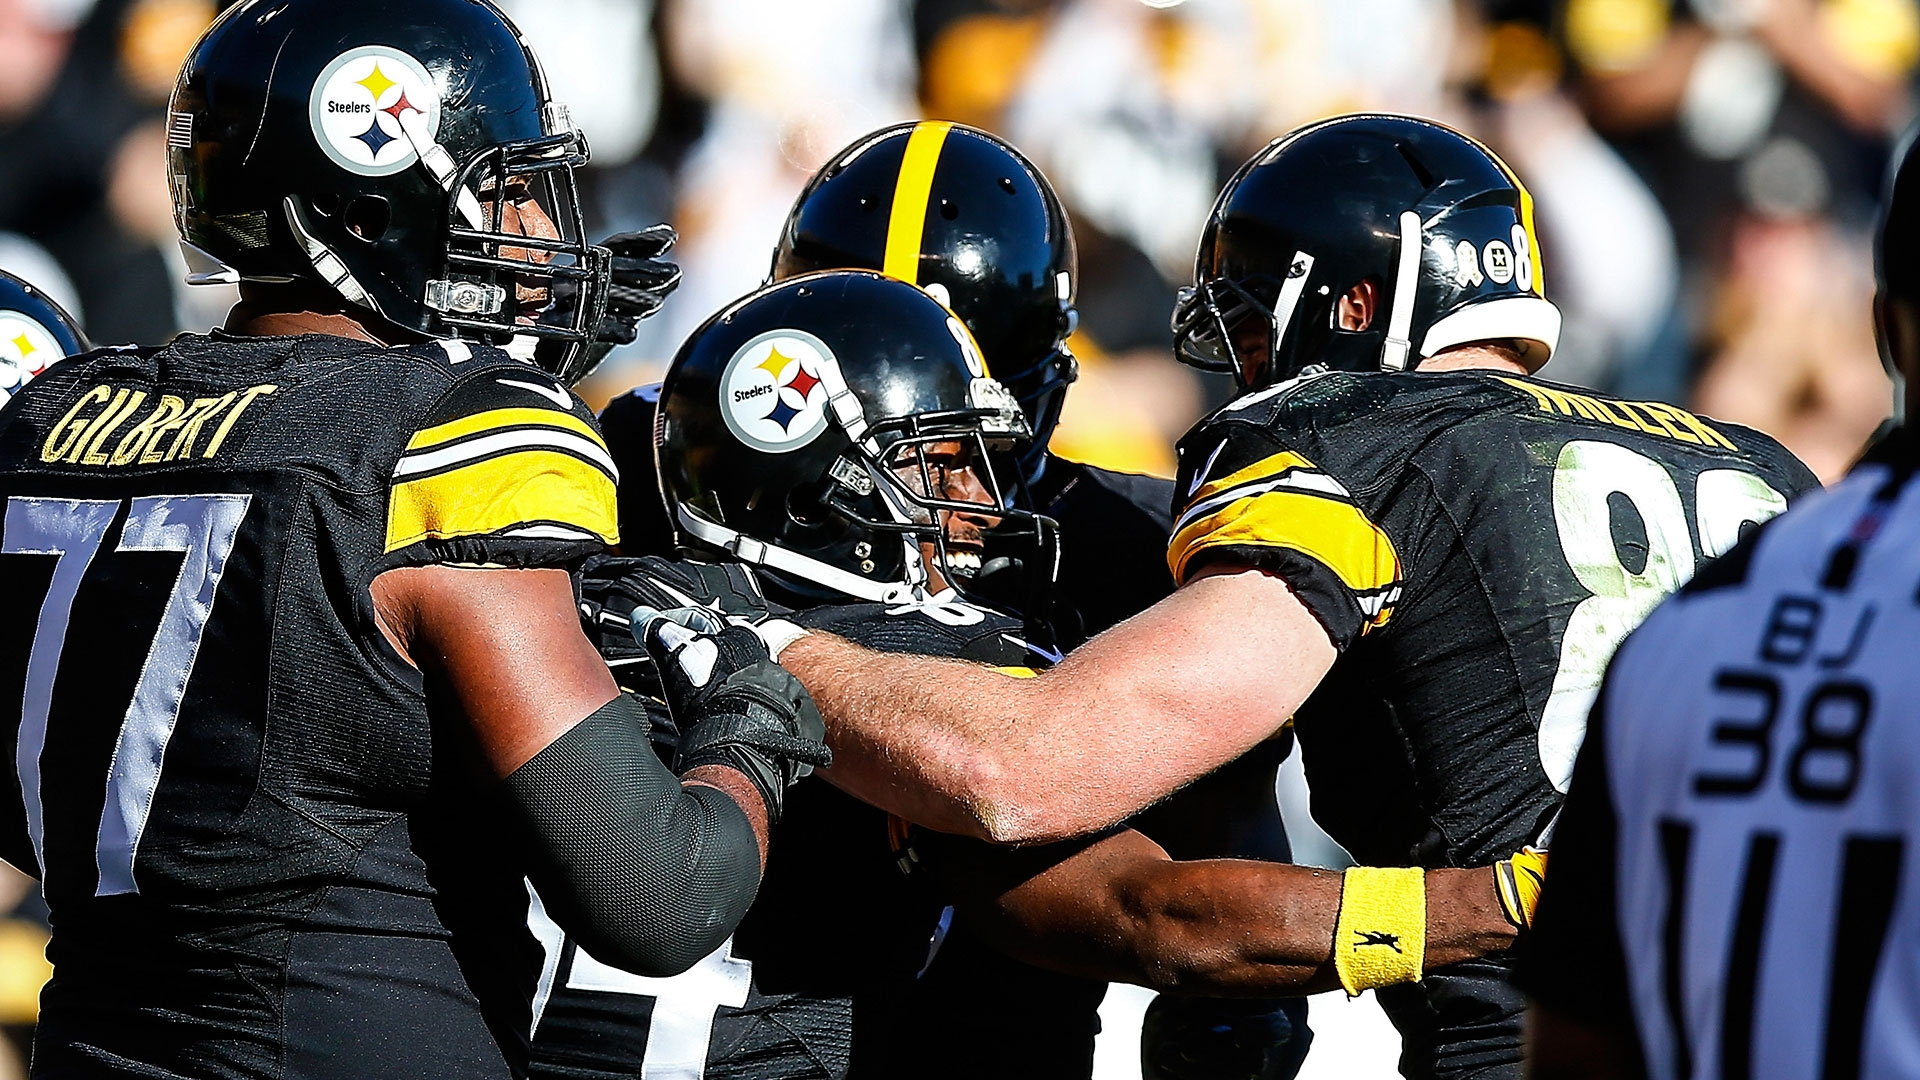 Pittsburgh Steelers News The official source of Pittsburgh Steelers news articles and opinion columns